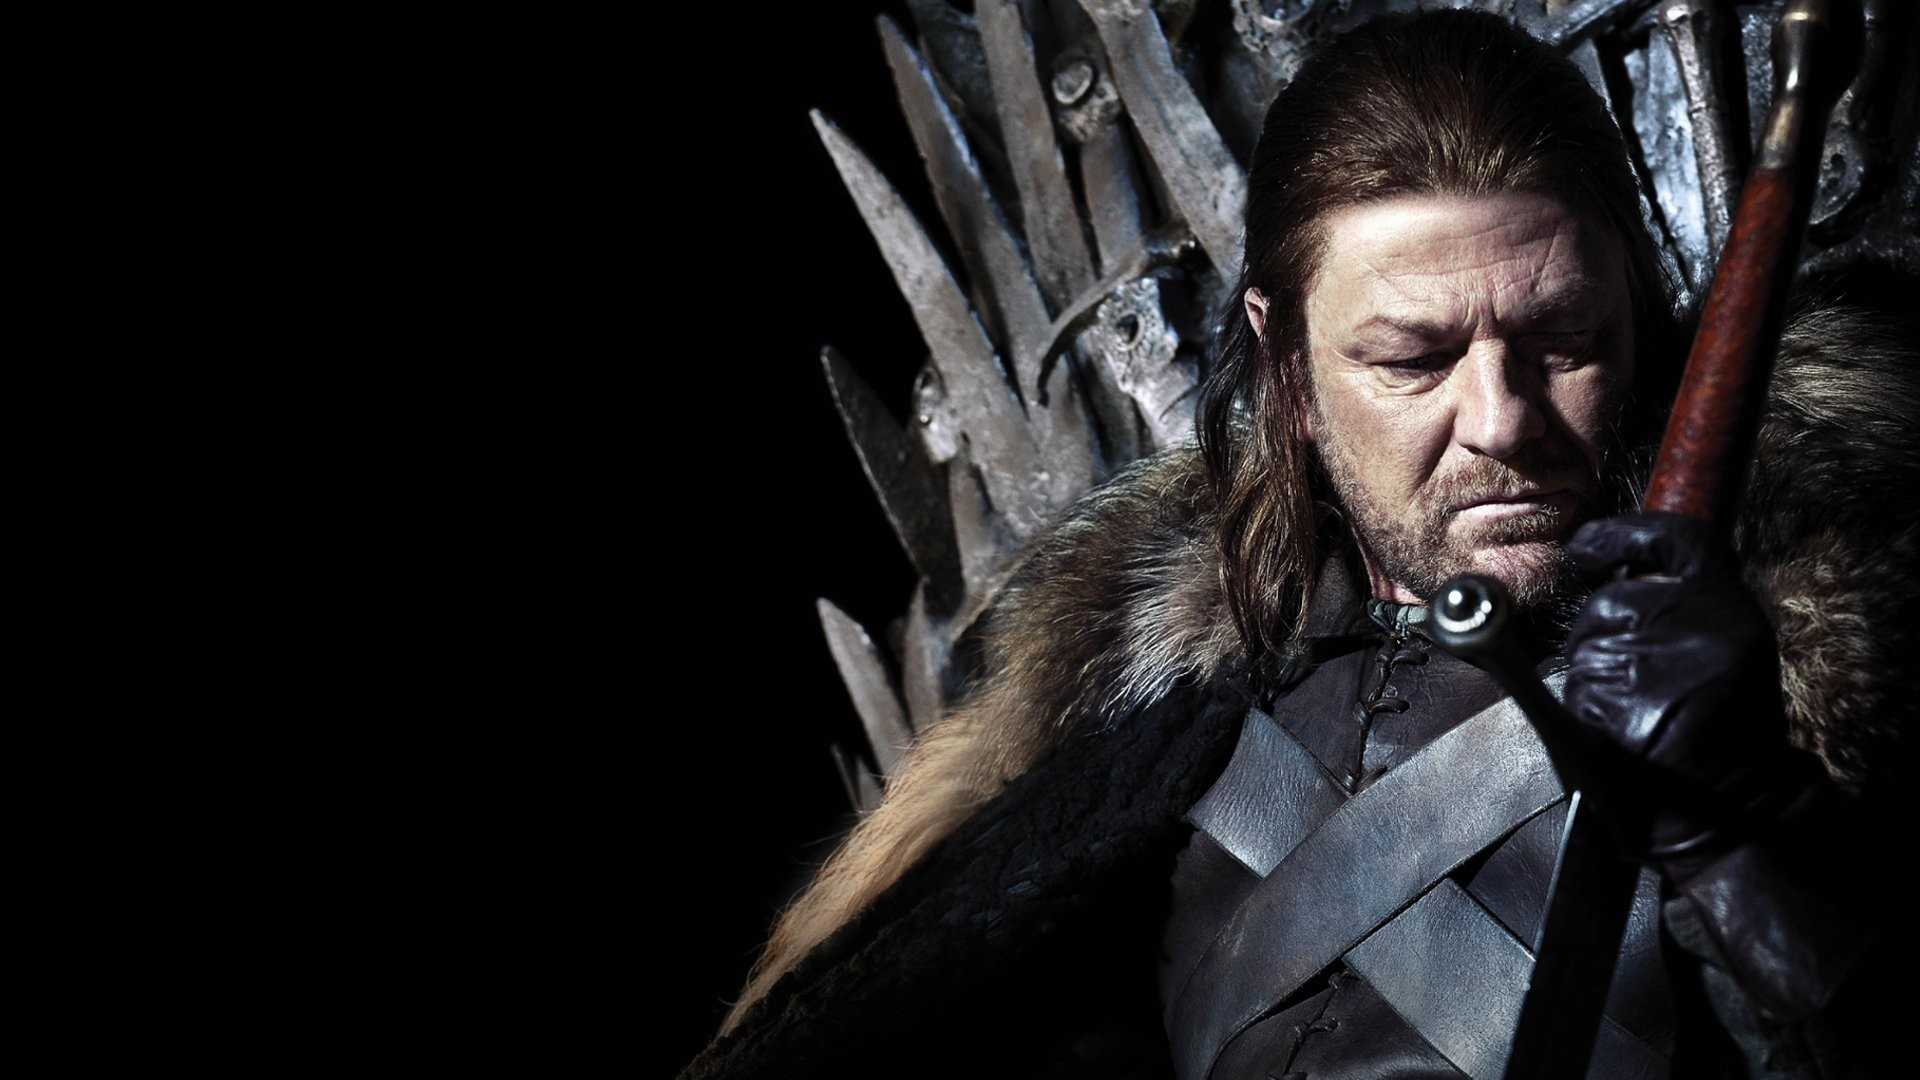 game-of-thrones-sean-bean-eddard-ned-stark-.jpg (270.3 Kb)